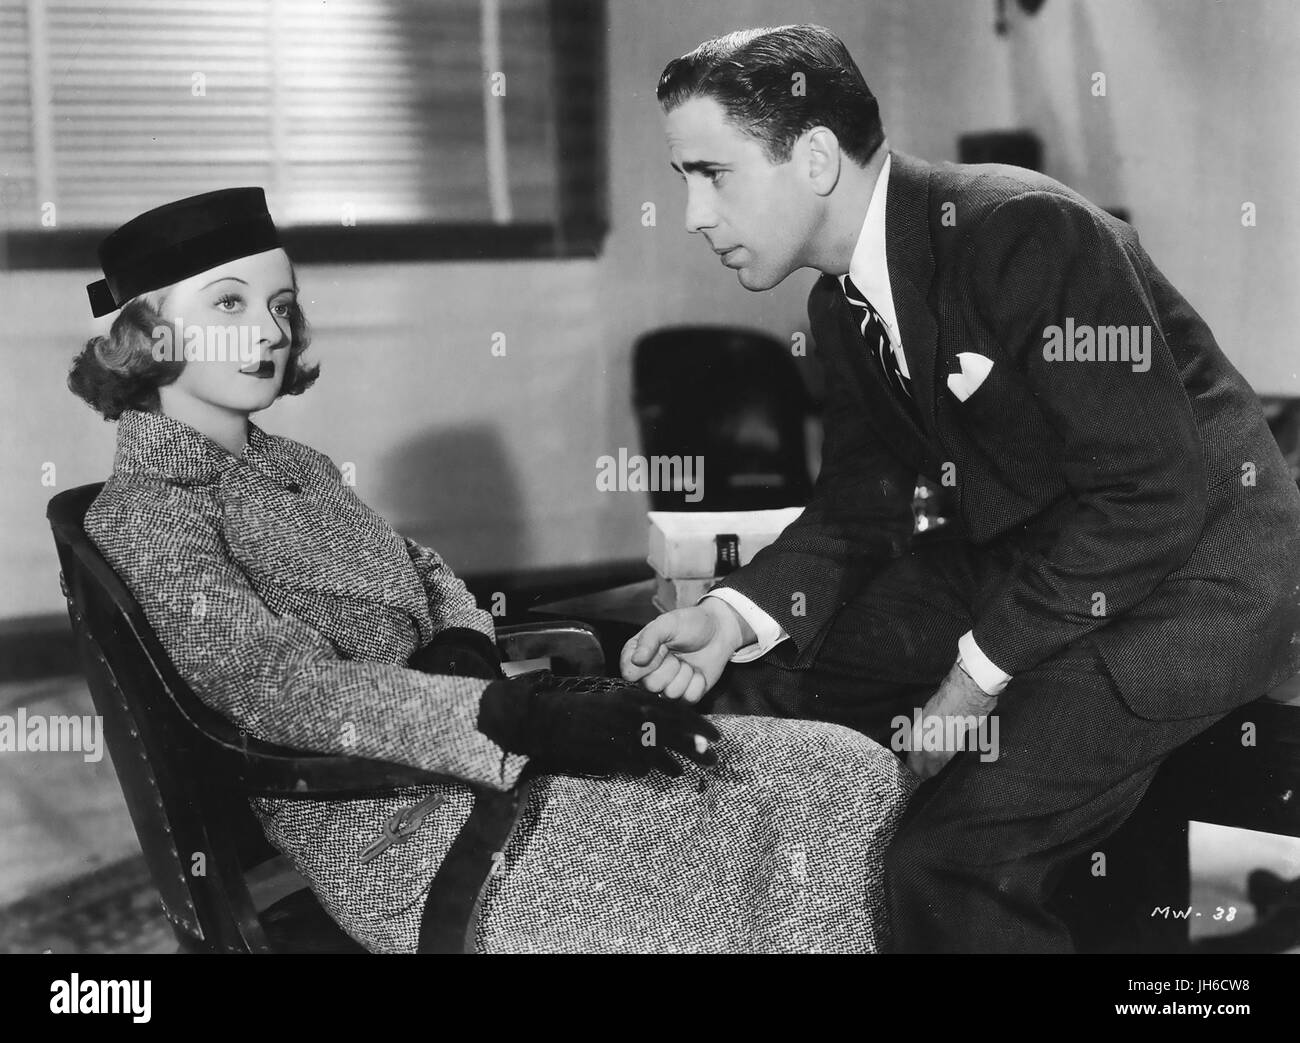 MARKED WOMAN 1937 Warner Bros film with Bette Davis and Humphrey Bogart - Stock Image